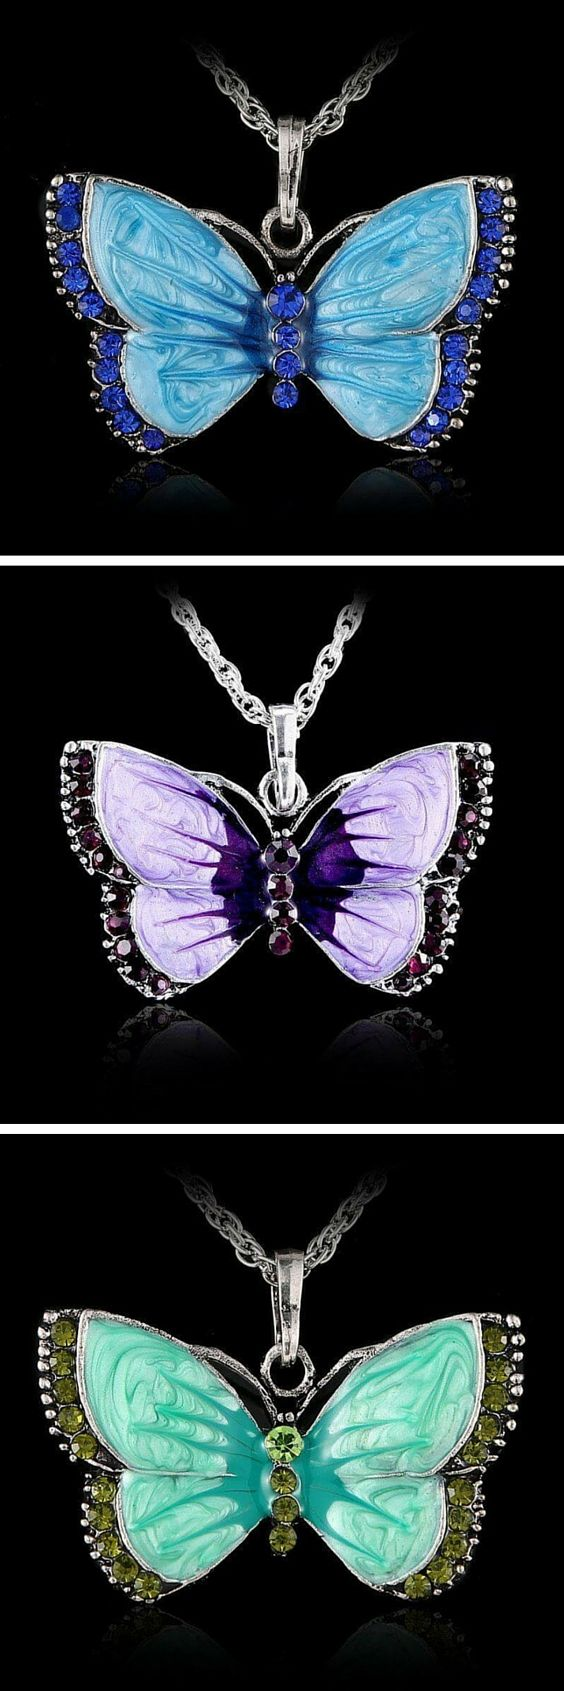 Love Butterflies? Then this is Butterfly necklace is for you. Get yours now at 50% off! Today only!